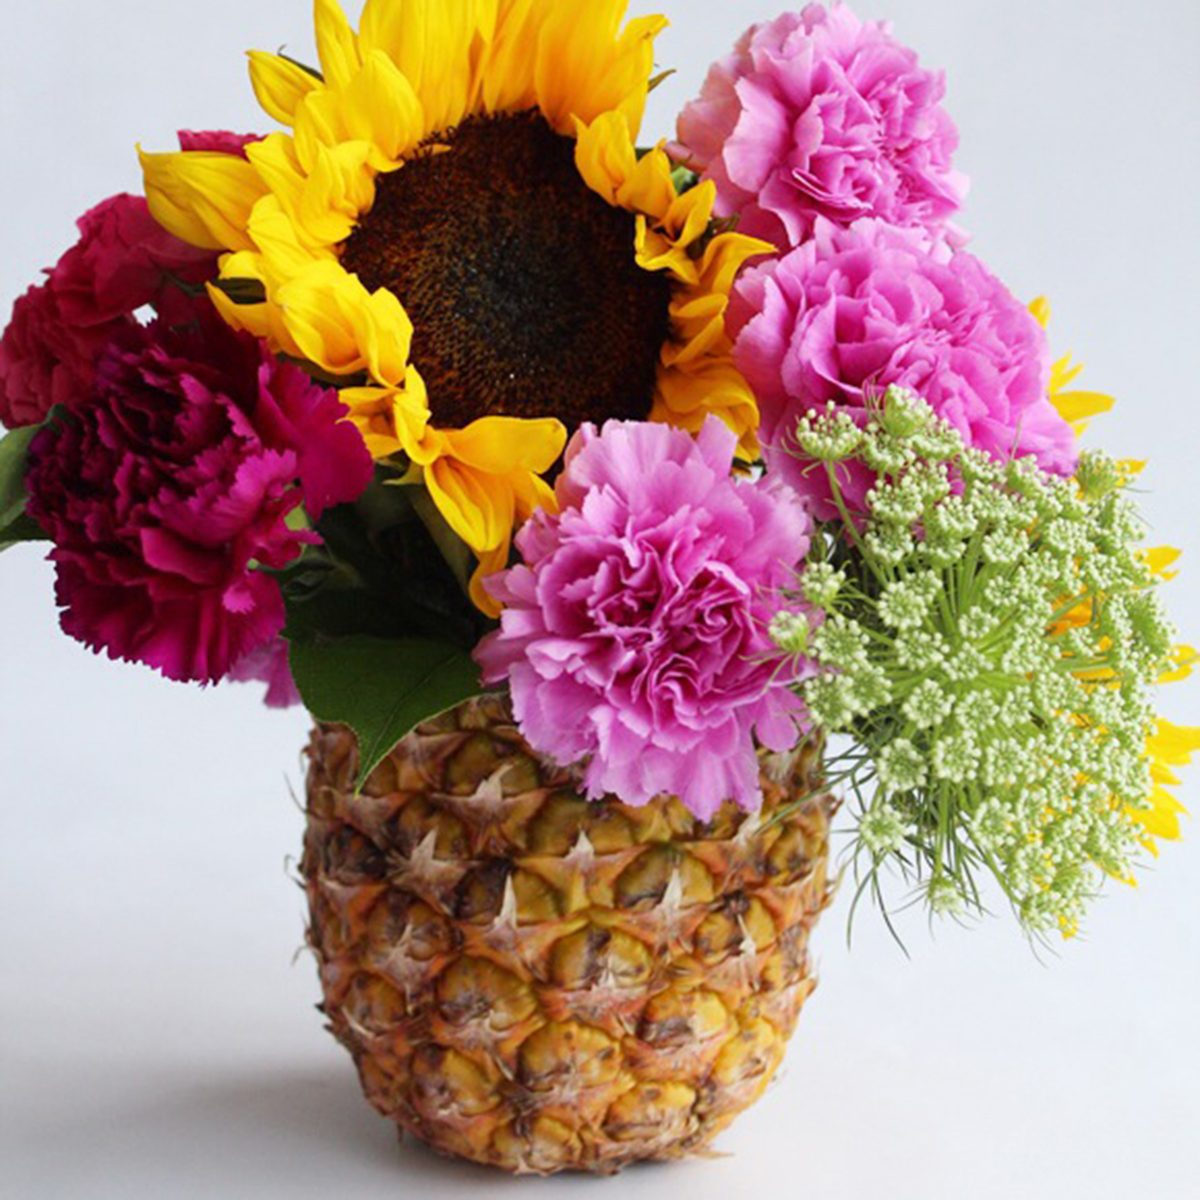 12 Crafty Ideas For Diy Table Centerpieces Taste Of Home